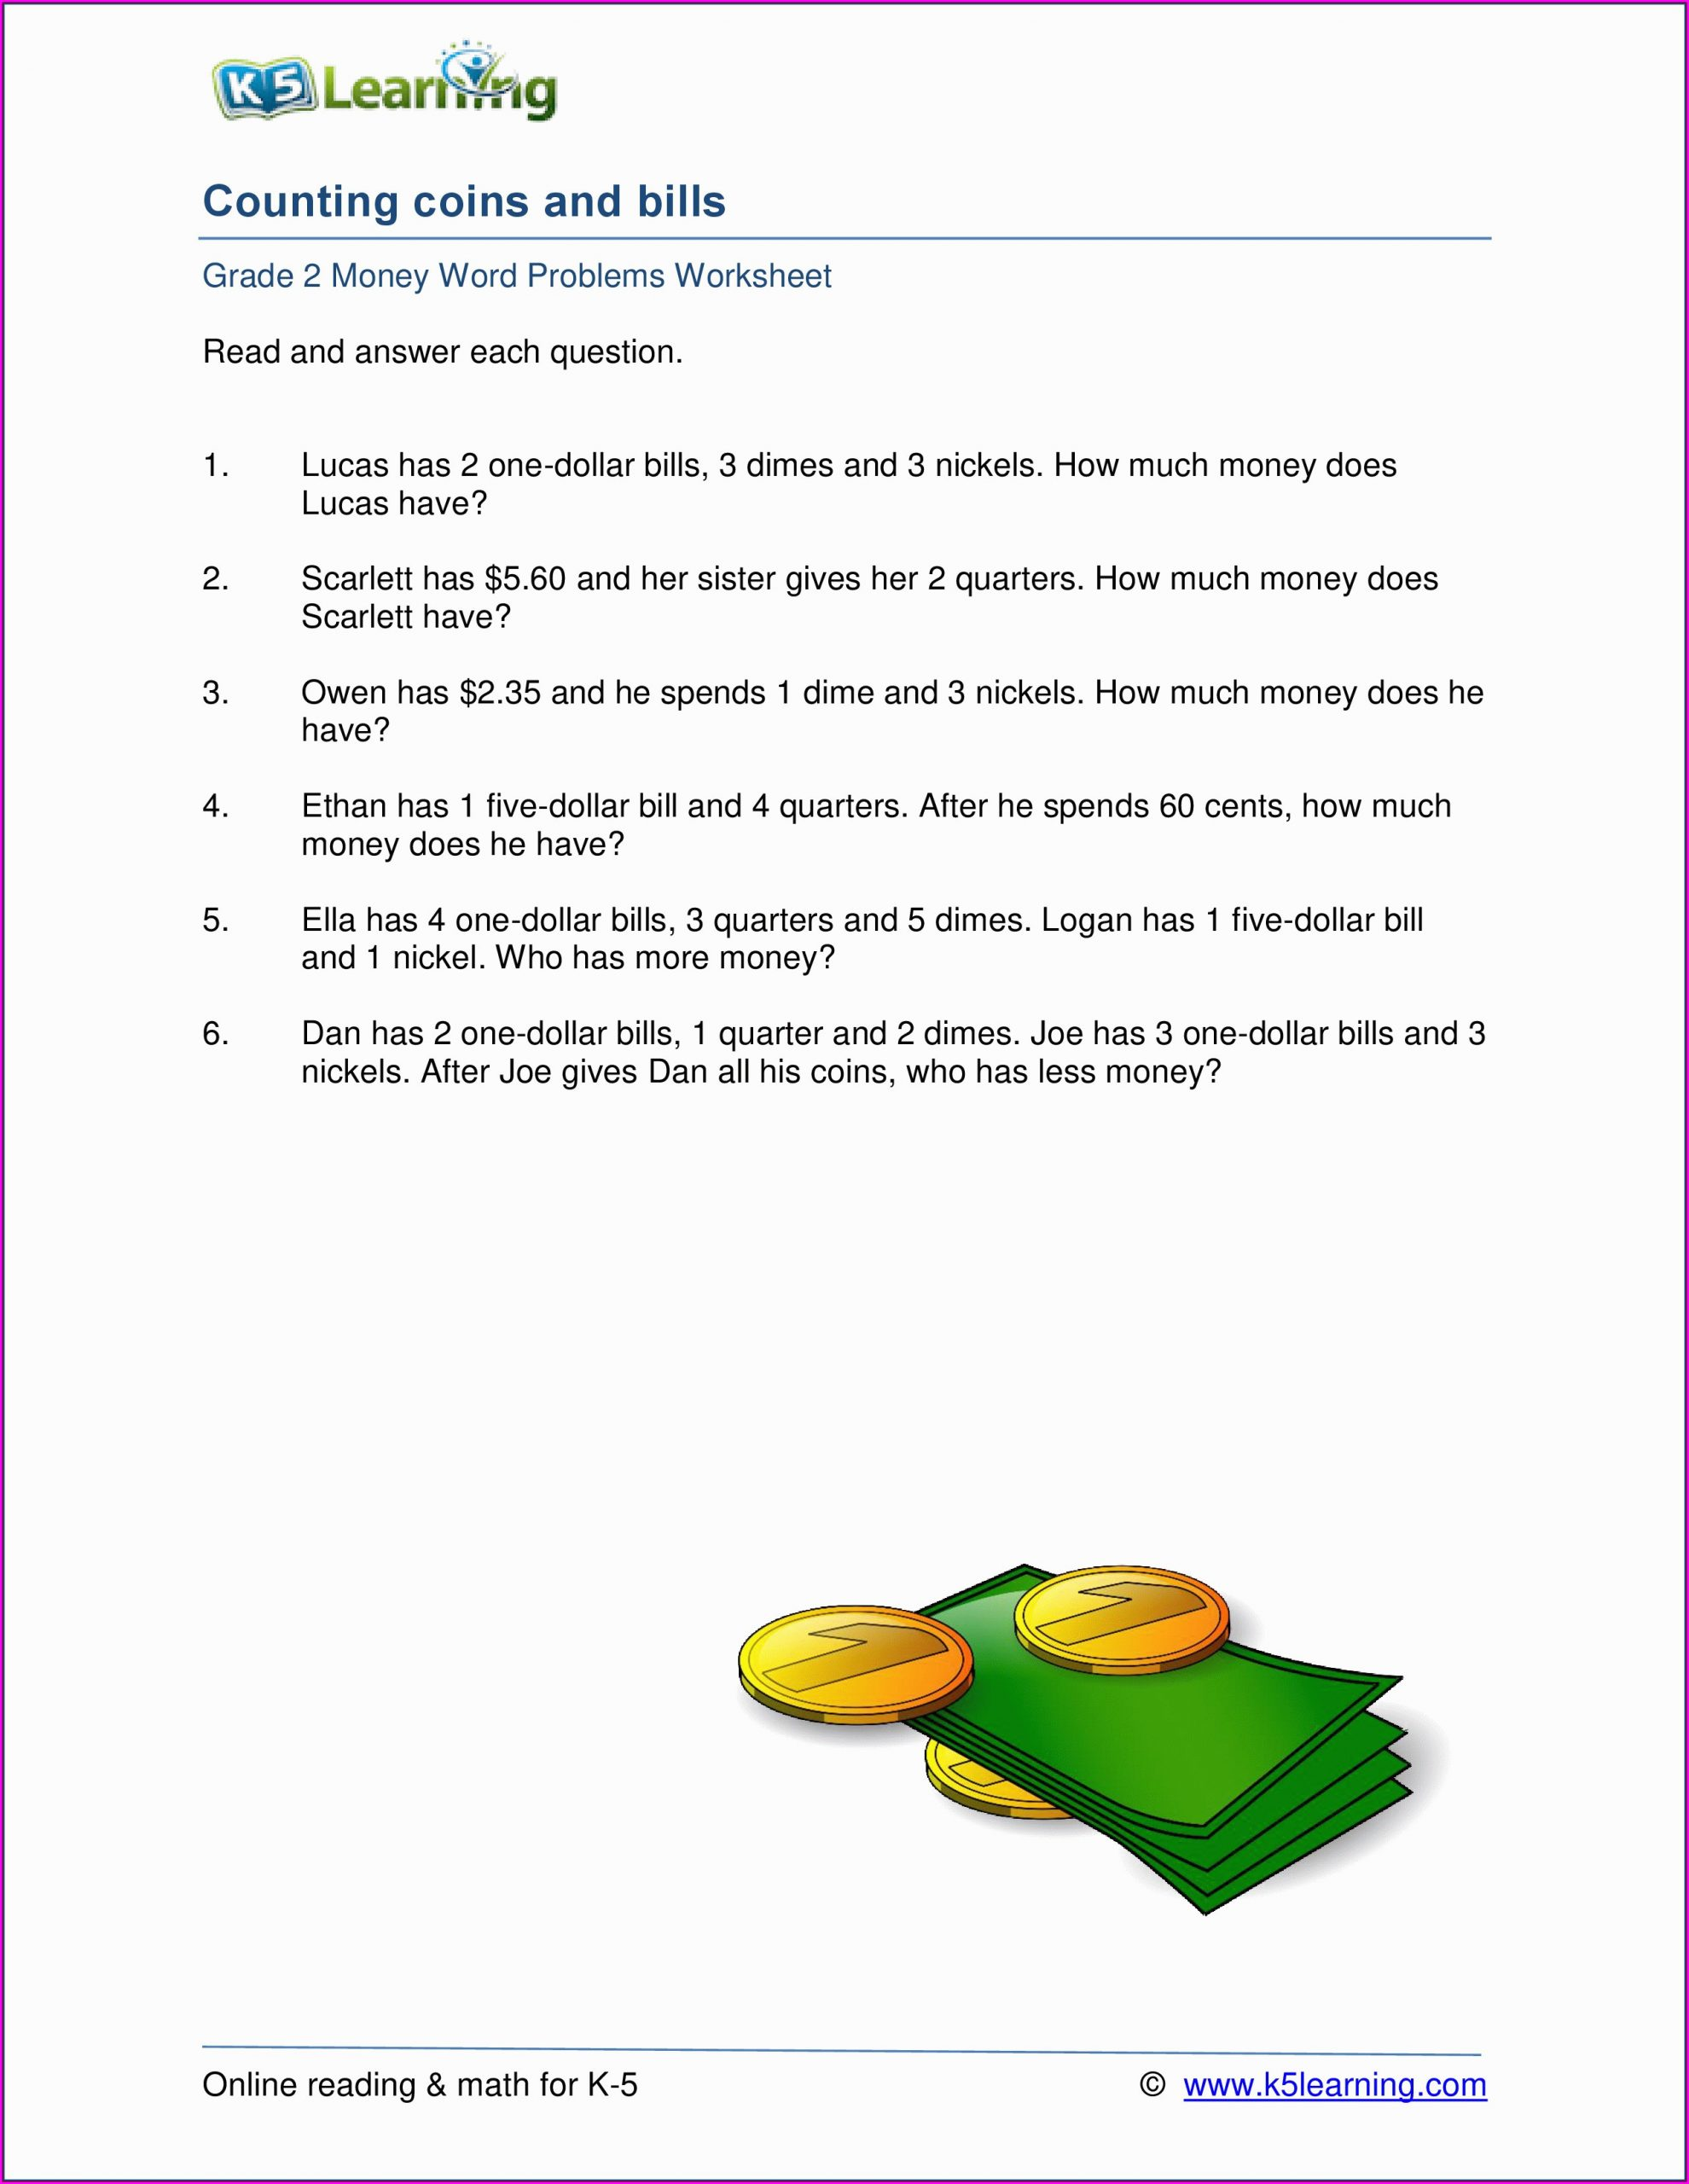 K5 Learning Math Grade 4 Math Worksheet Grade 4 Canada